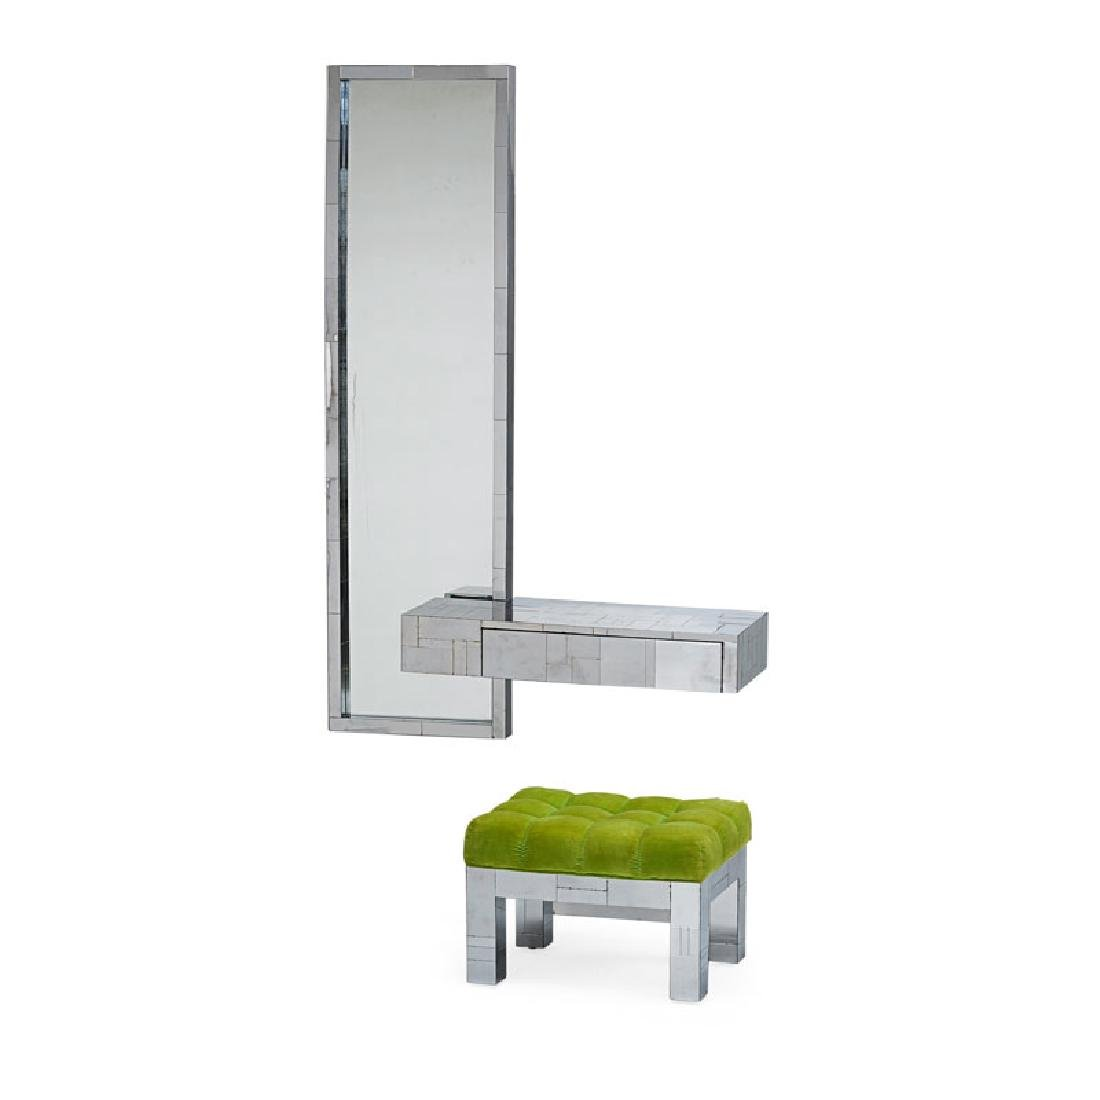 PAUL EVANS Cityscape mirror, console, and stool